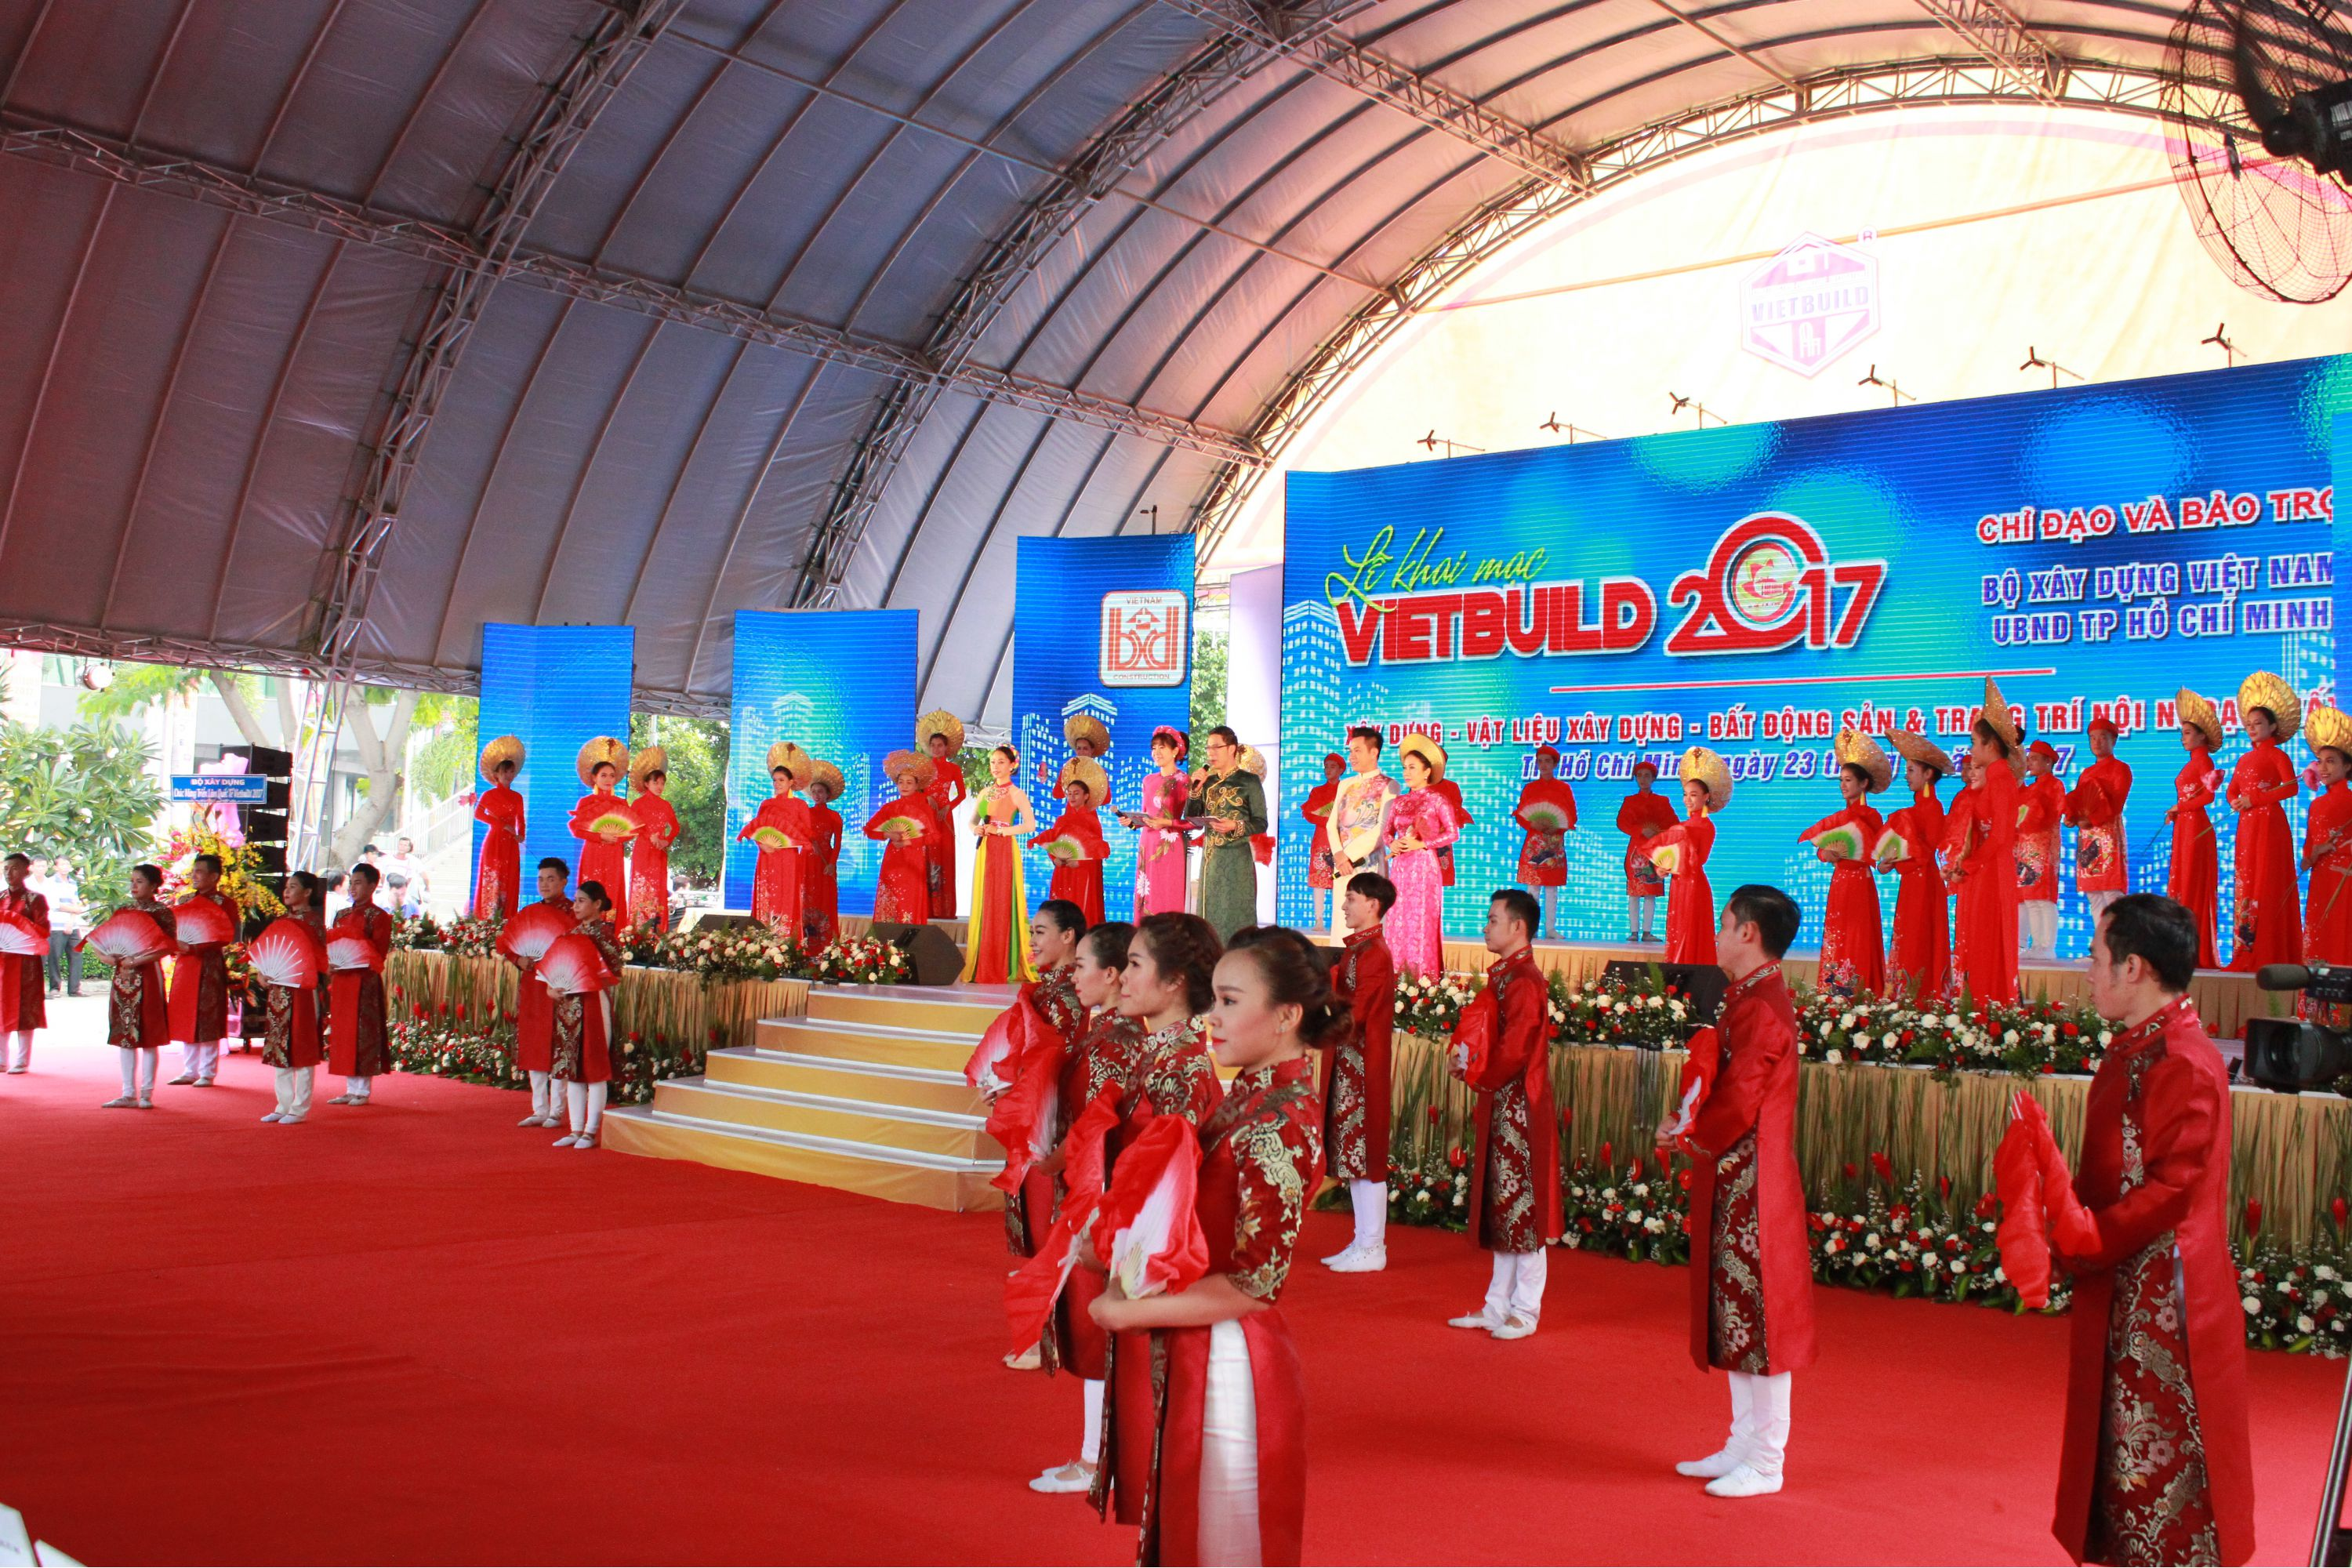 Lecmax at Vietbuild HCM